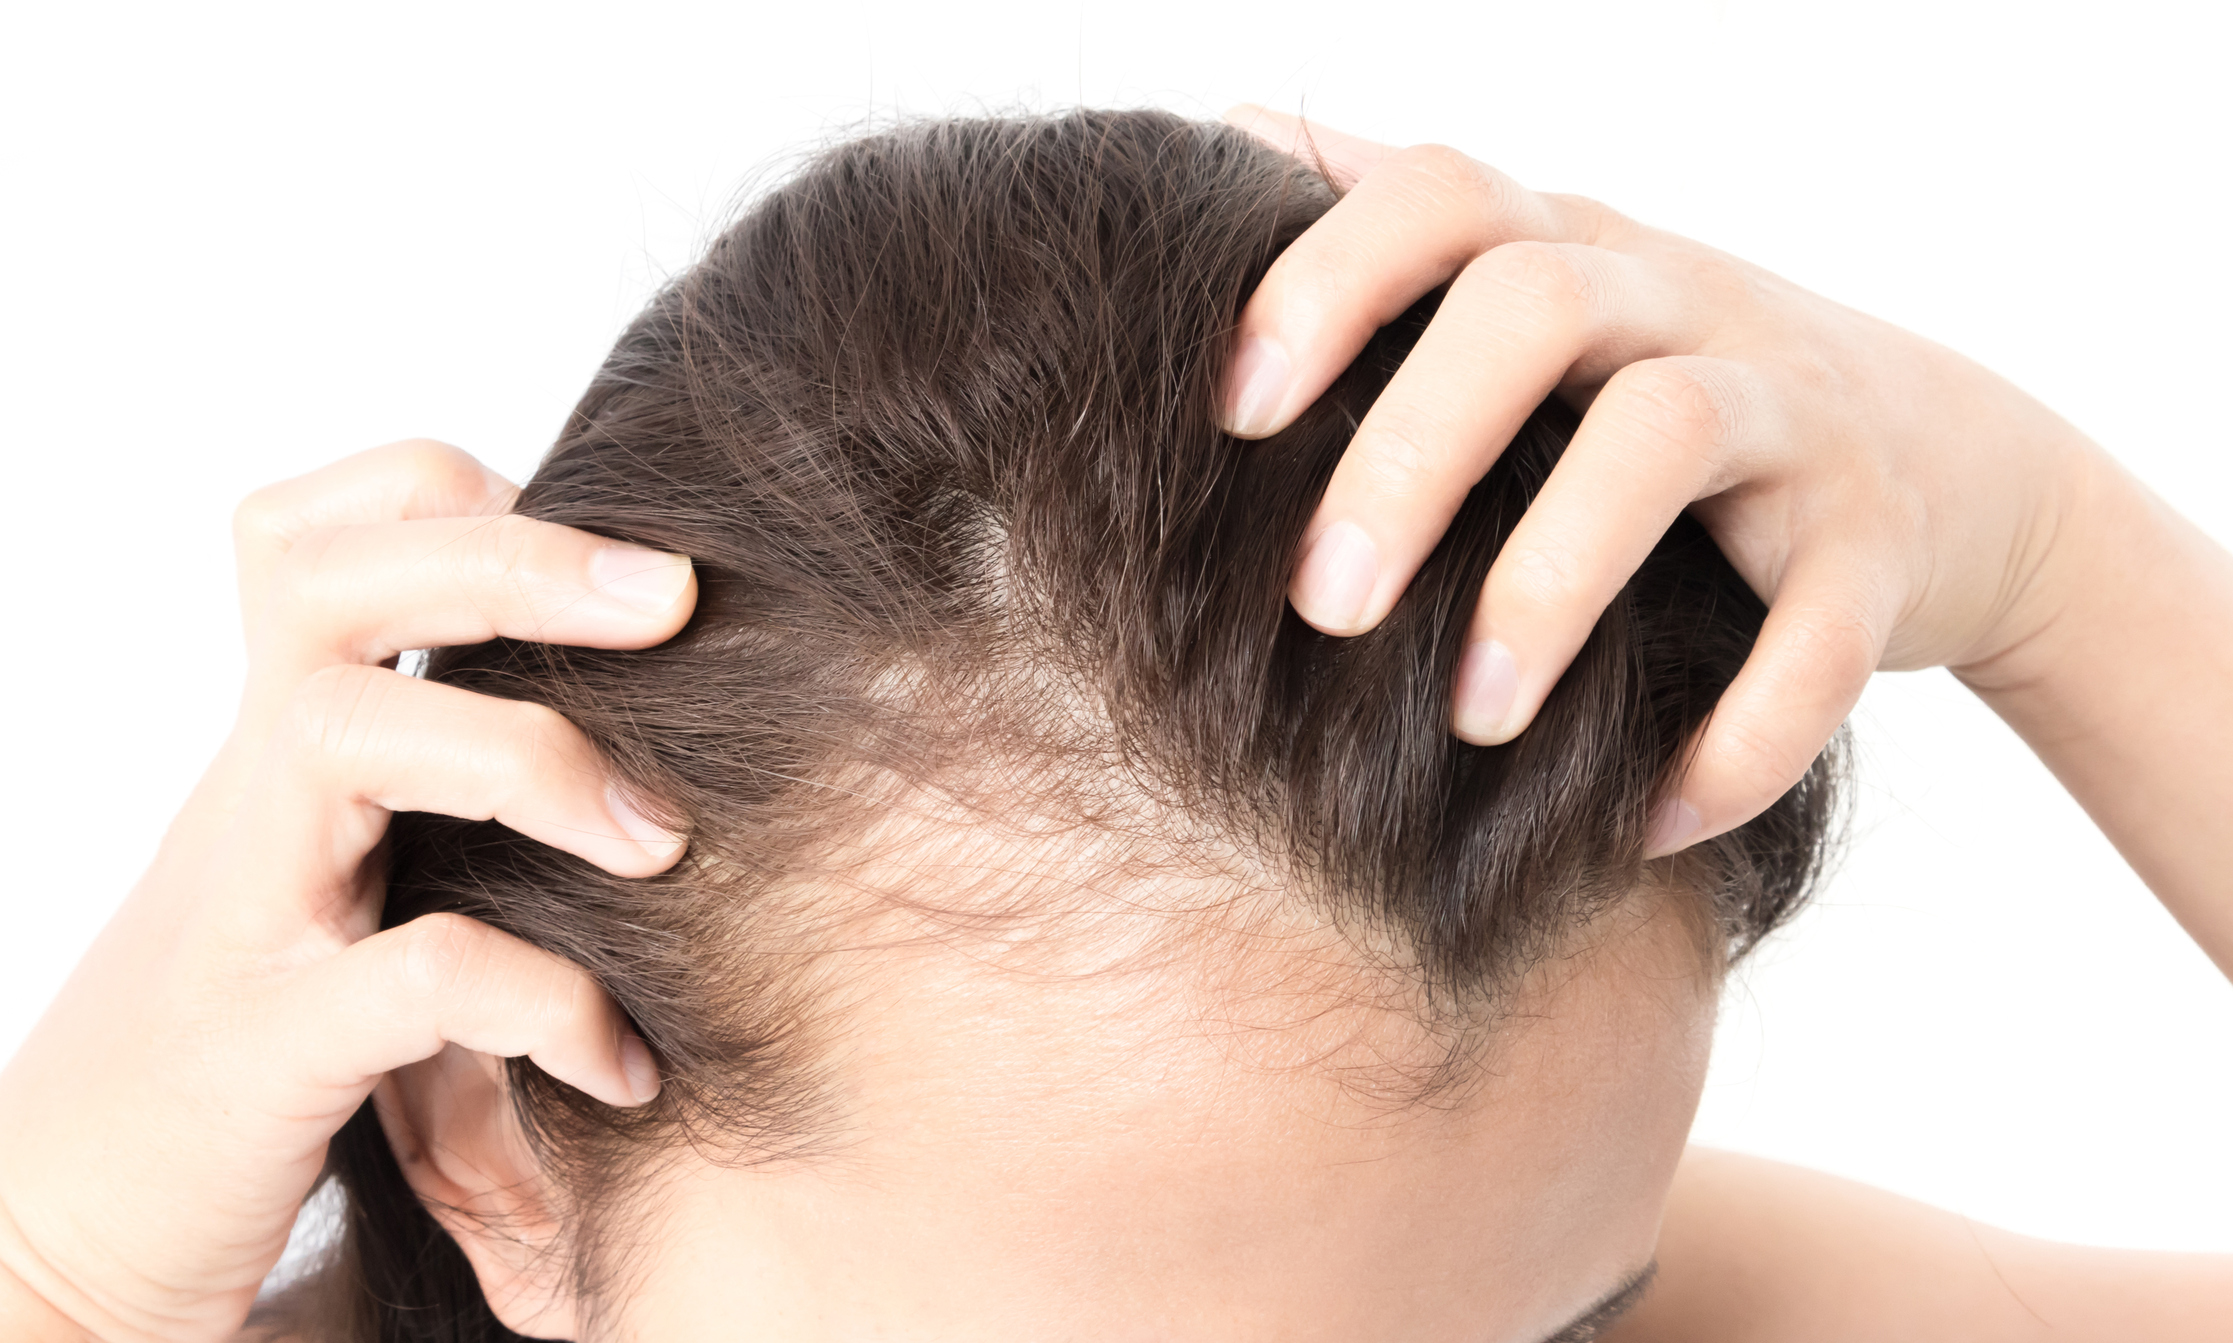 naturopathy treatment for hair loss@natural-cure.org